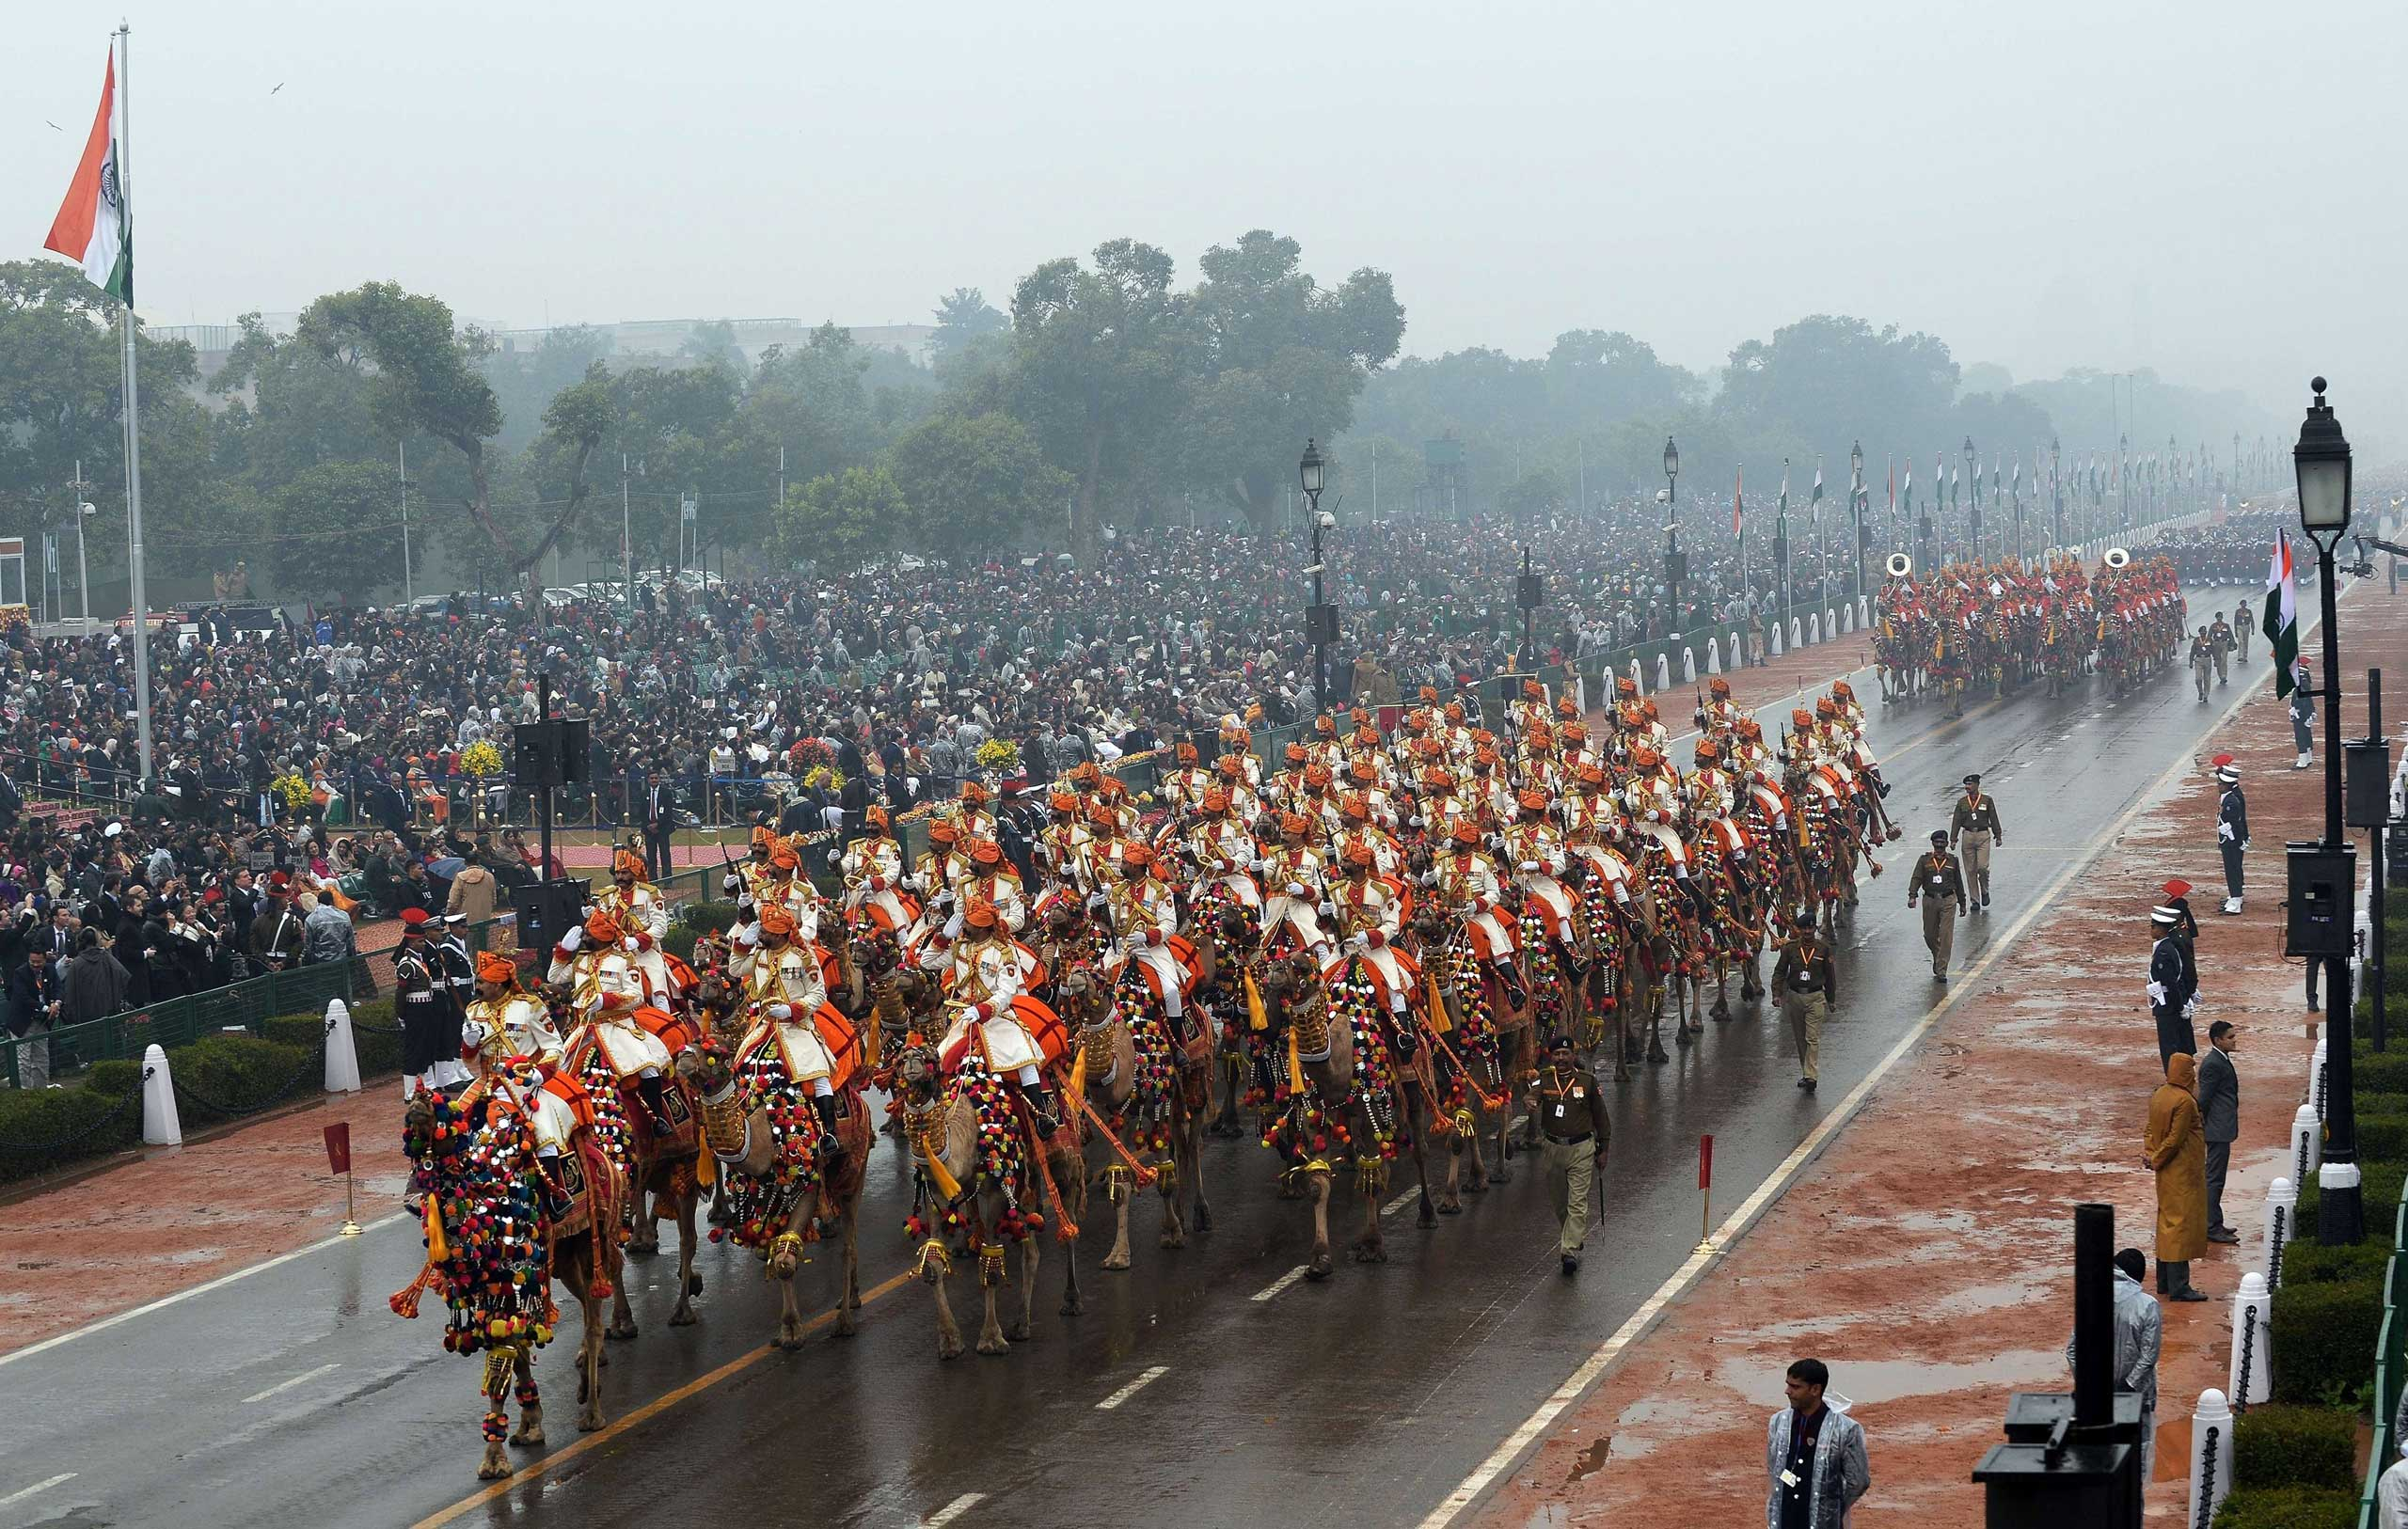 Soldiers march in formation down the ceremonial boulevard Rajpath during the Republic Day parade in New Delhi on Jan. 26, 2015.